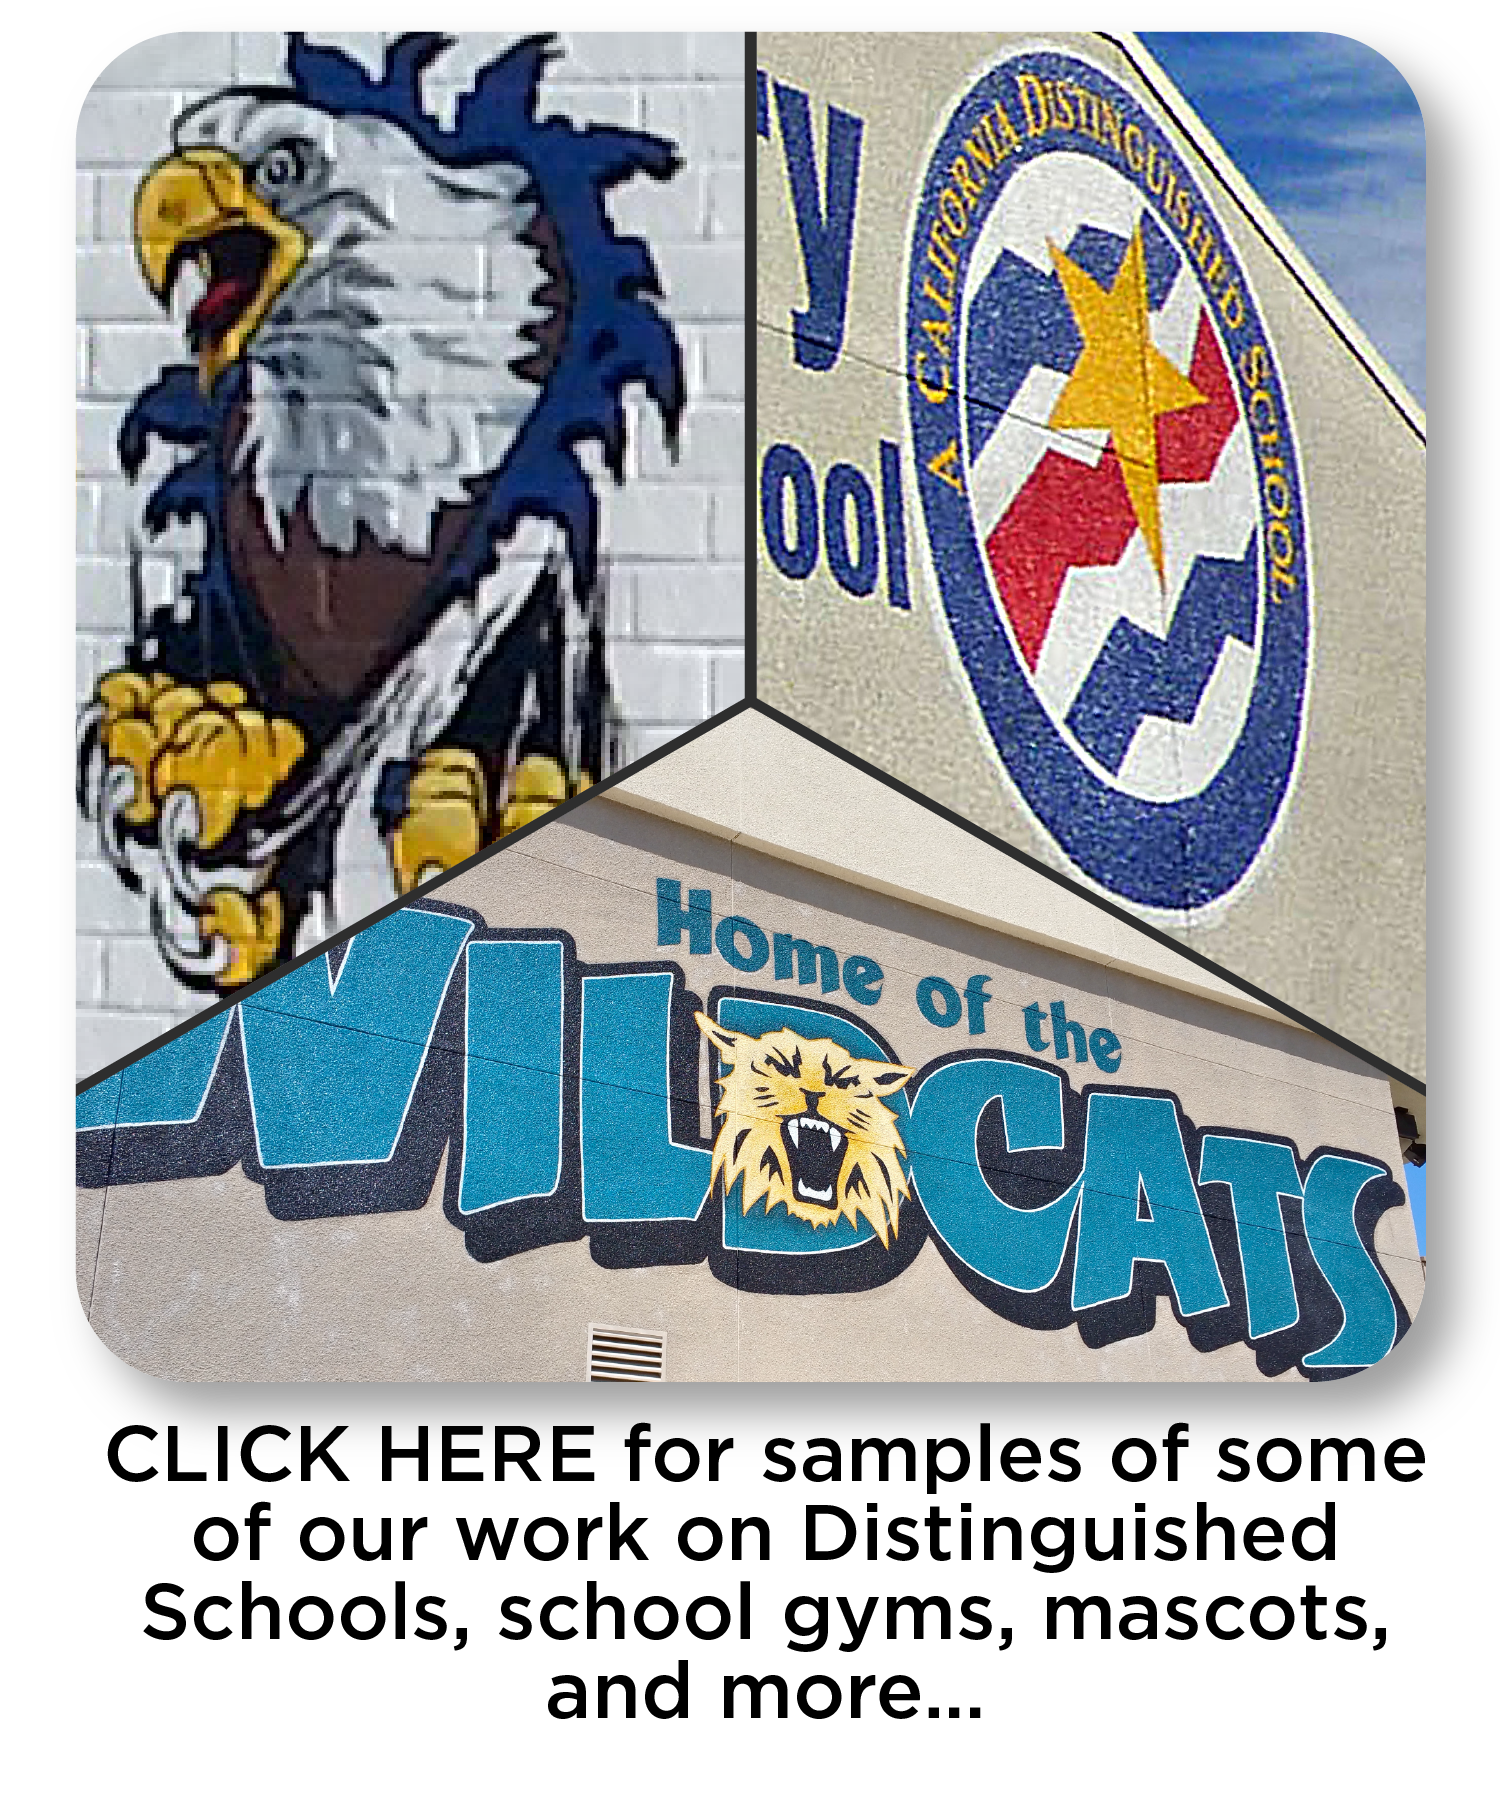 CLICK HERE for samples of some of our work - gym graphics, Distinguished Schools, school gyms, mascots, and more…